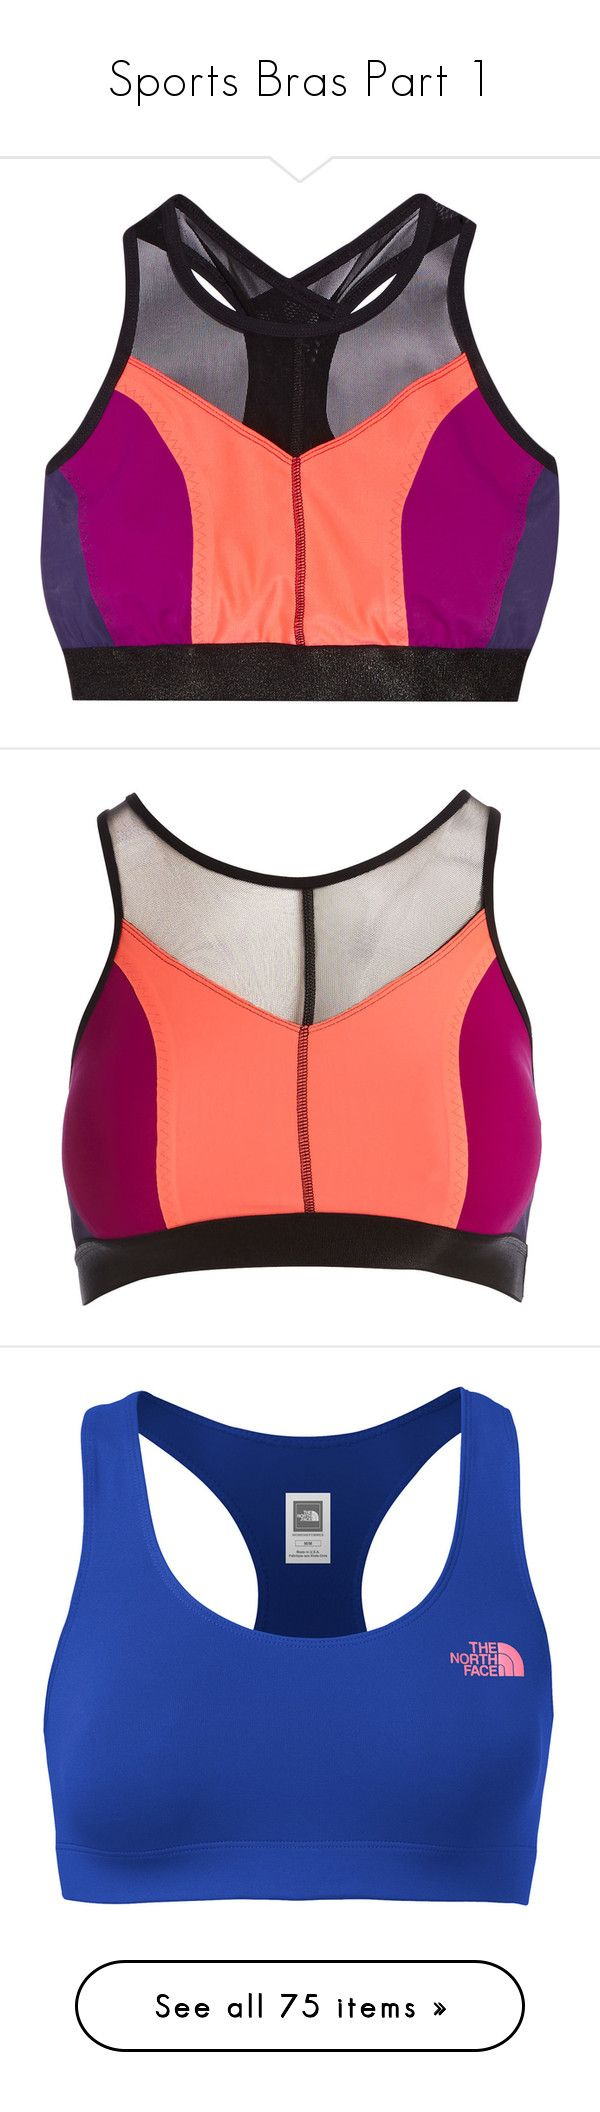 """""""Sports Bras Part 1"""" by allison-epps ❤ liked on Polyvore featuring activewear, sports bras, coral, red sports bra, racerback sports bra, stretch jersey, racer back sports bra, fit for the summer, the north face and strappy sports bra"""